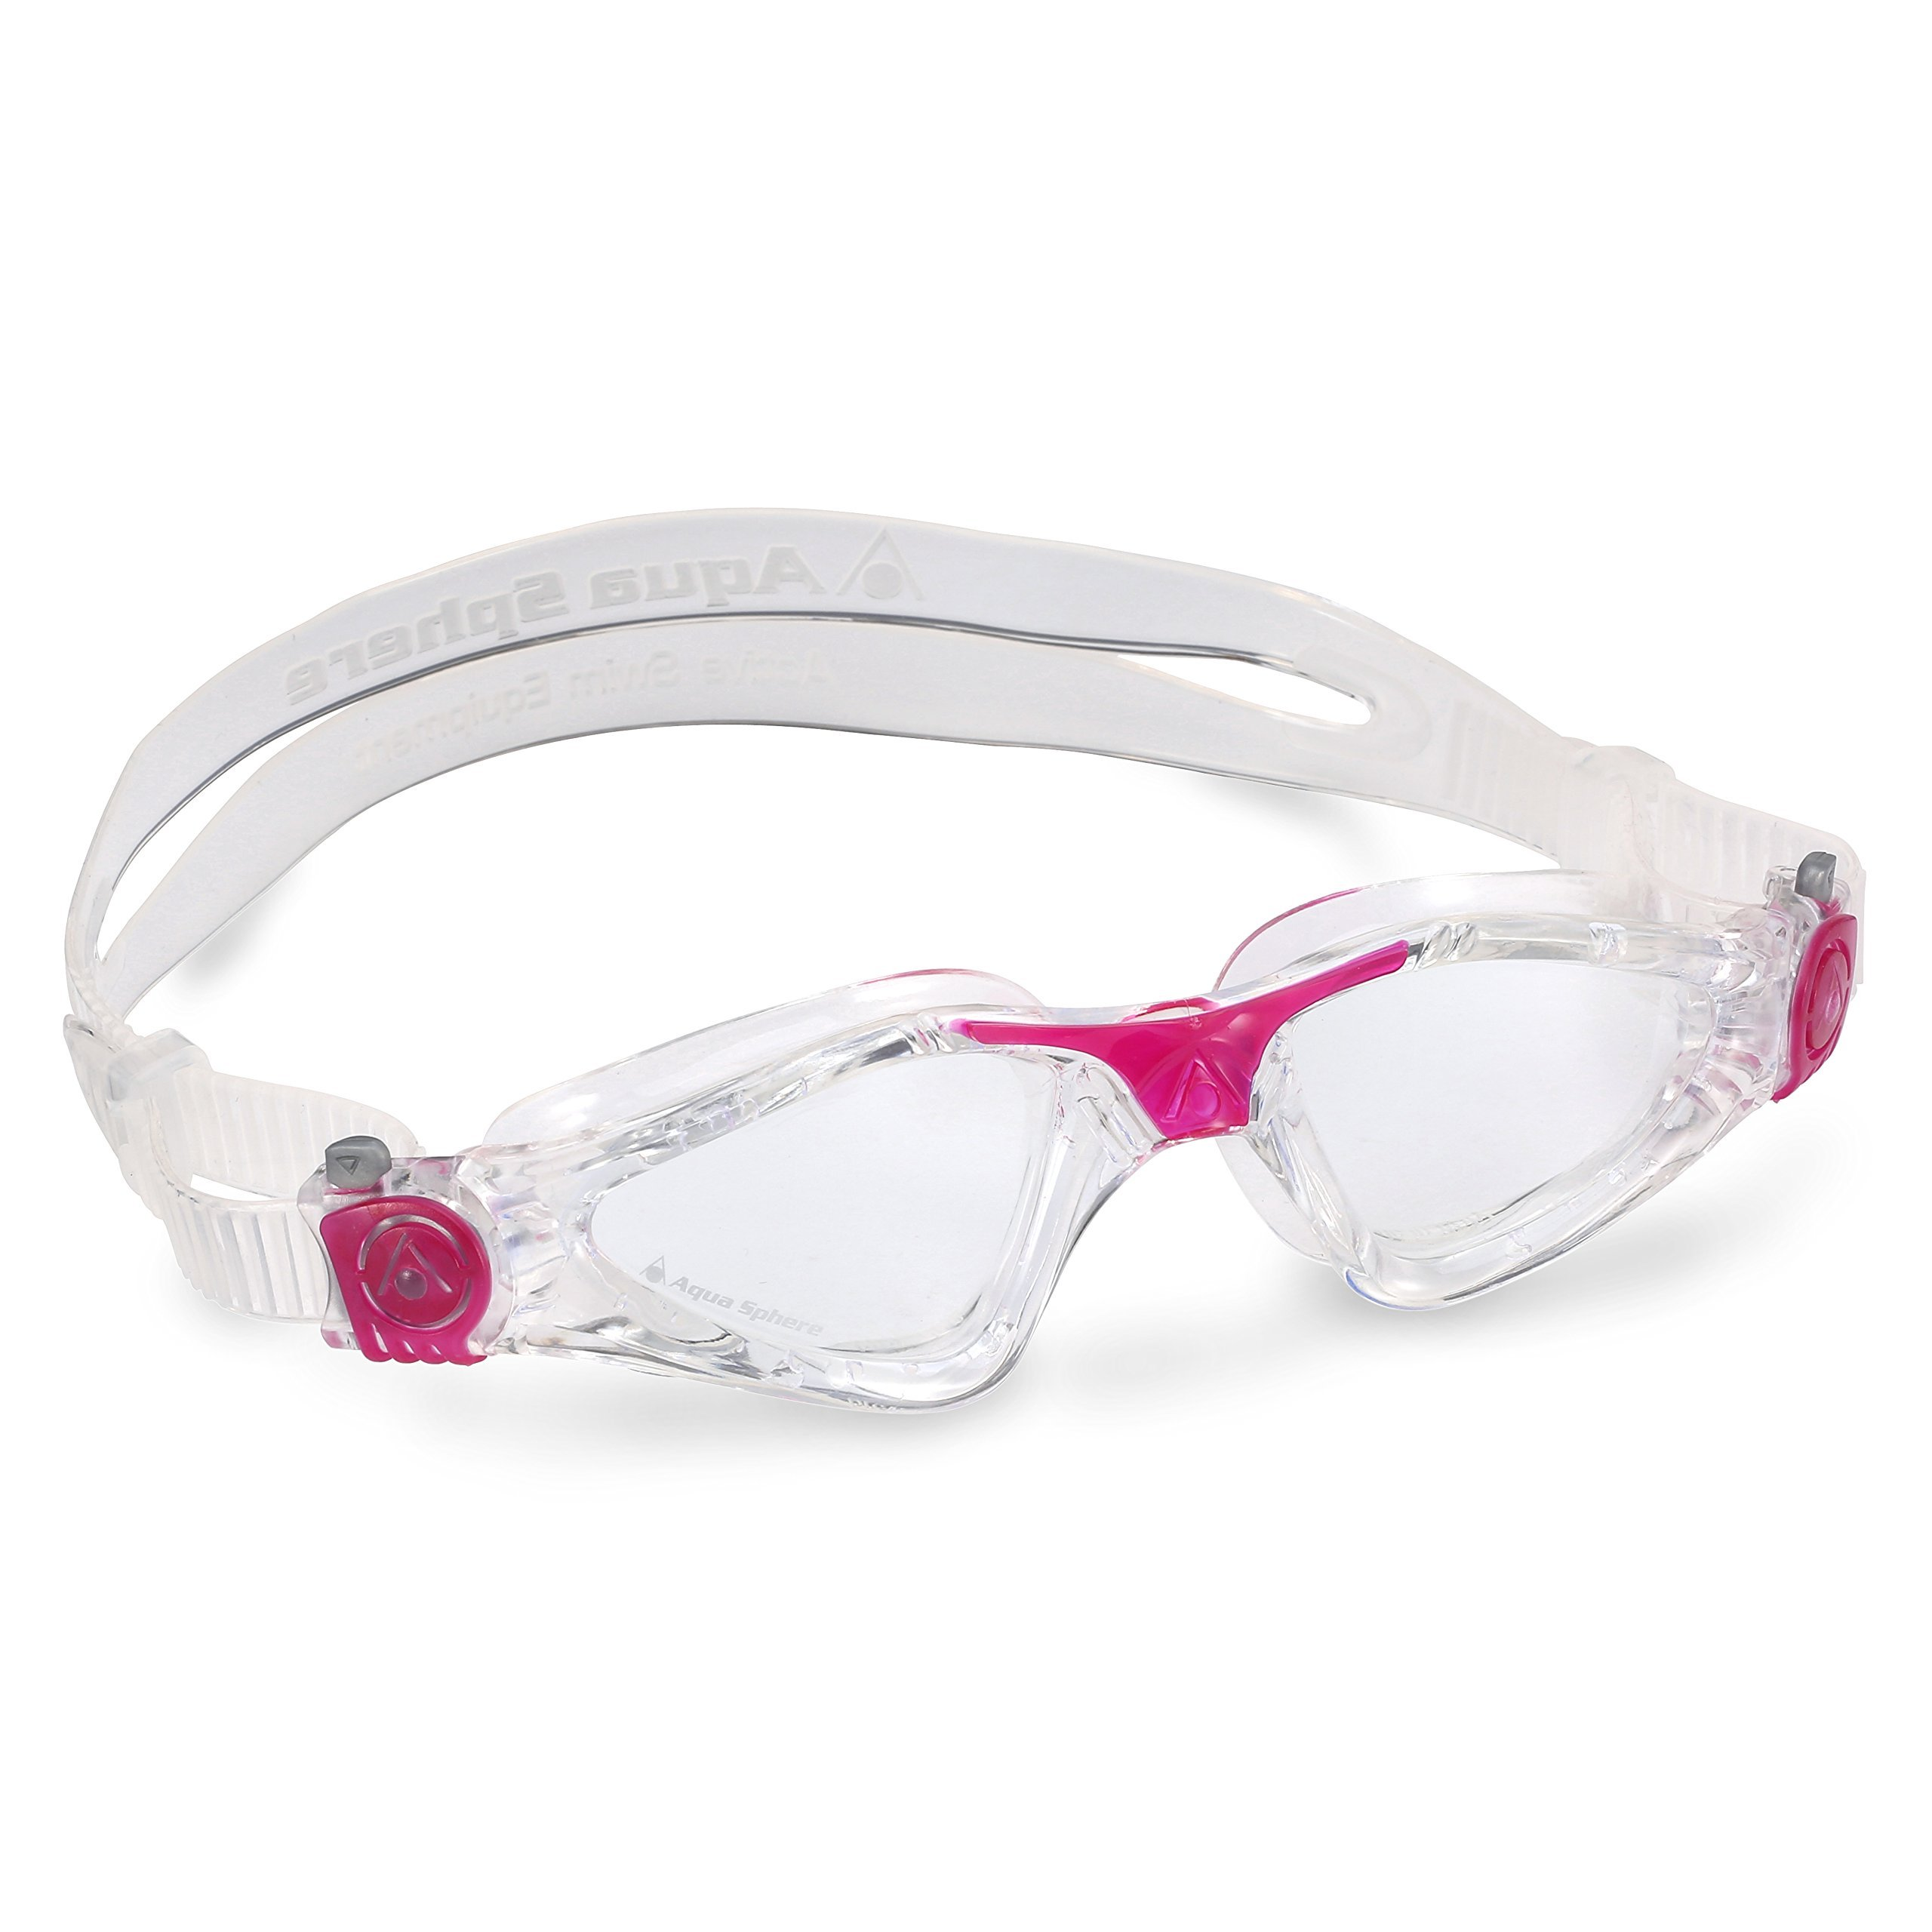 Aqua Sphere Kayenne Ladies with Clear Lens (Trasp/Fuxia) Swim Goggles for Women by Aqua Sphere (Image #8)